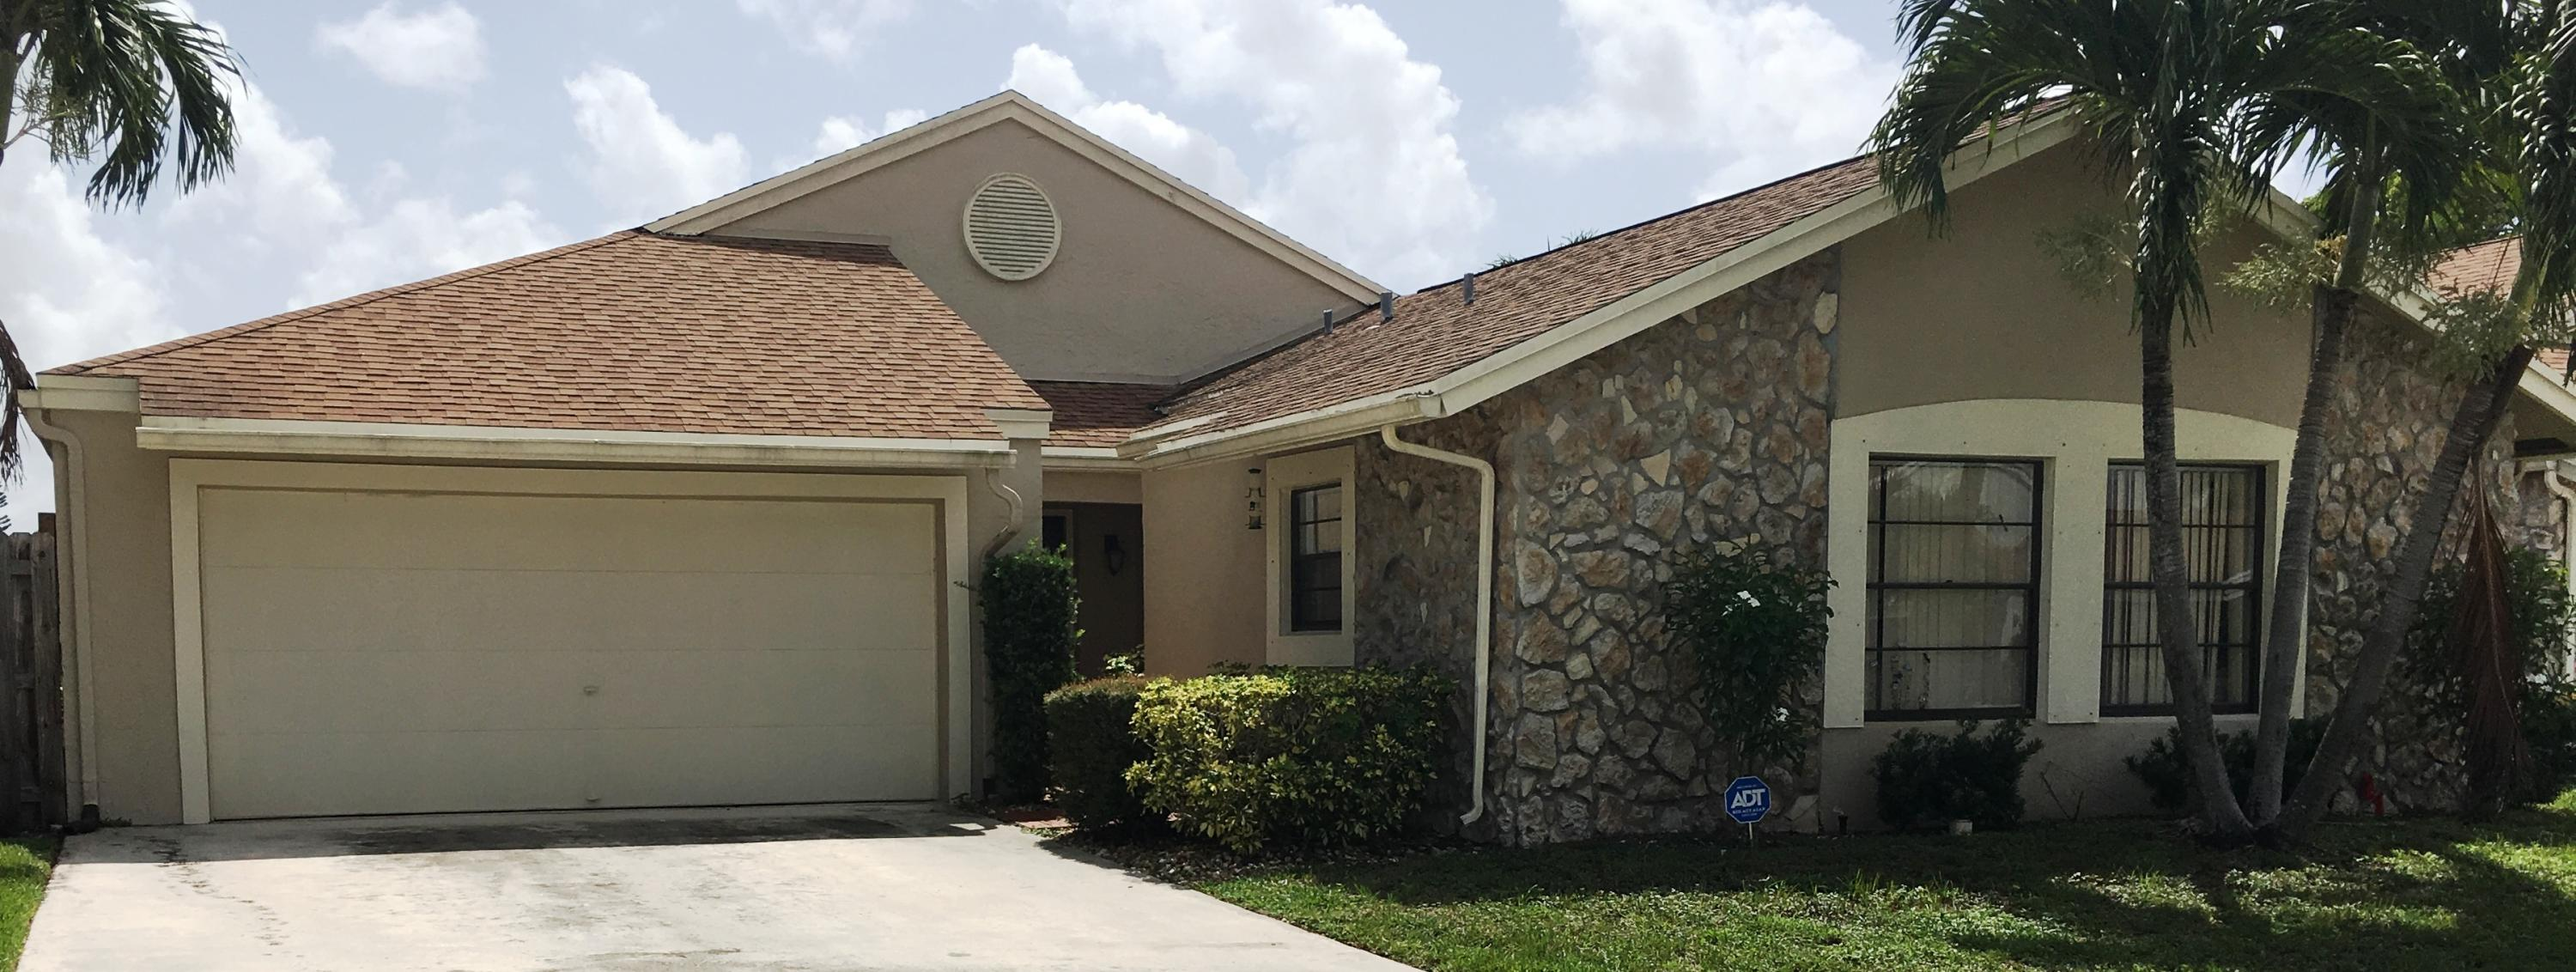 Photo of home for sale at 21020 Windemere Lane, Boca Raton FL